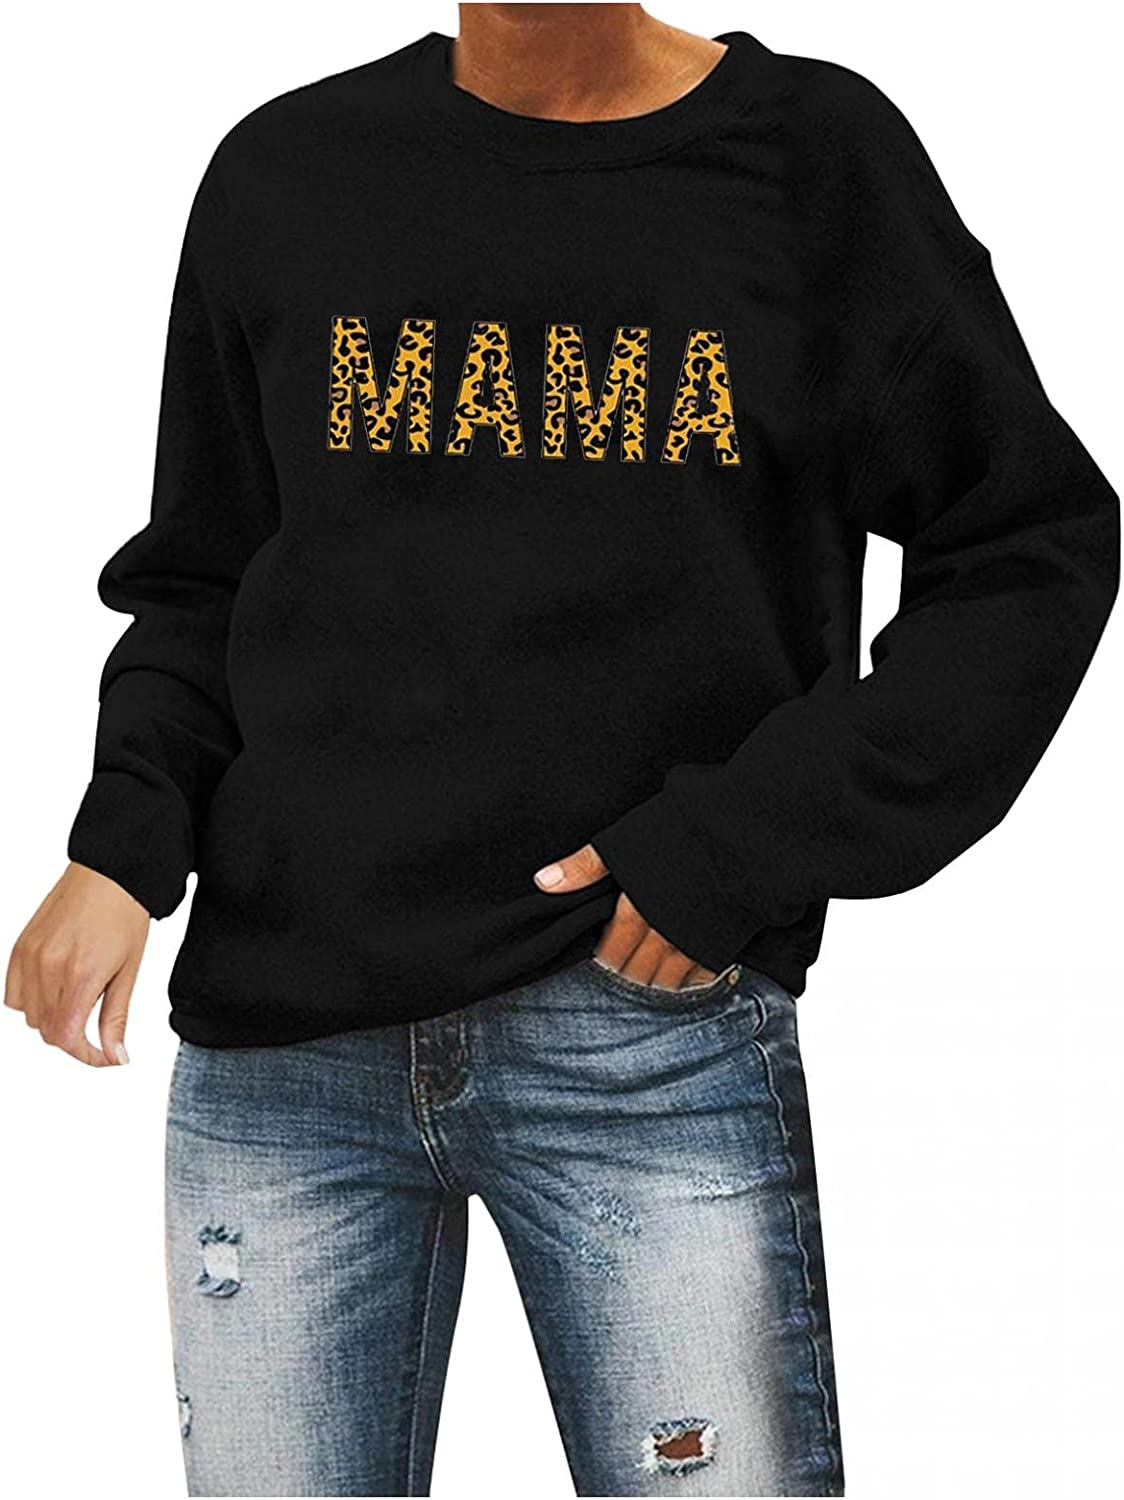 Ranking High material TOP17 Qisemi Sweatshirt for Women Womens Mama Printed Pullover Letter